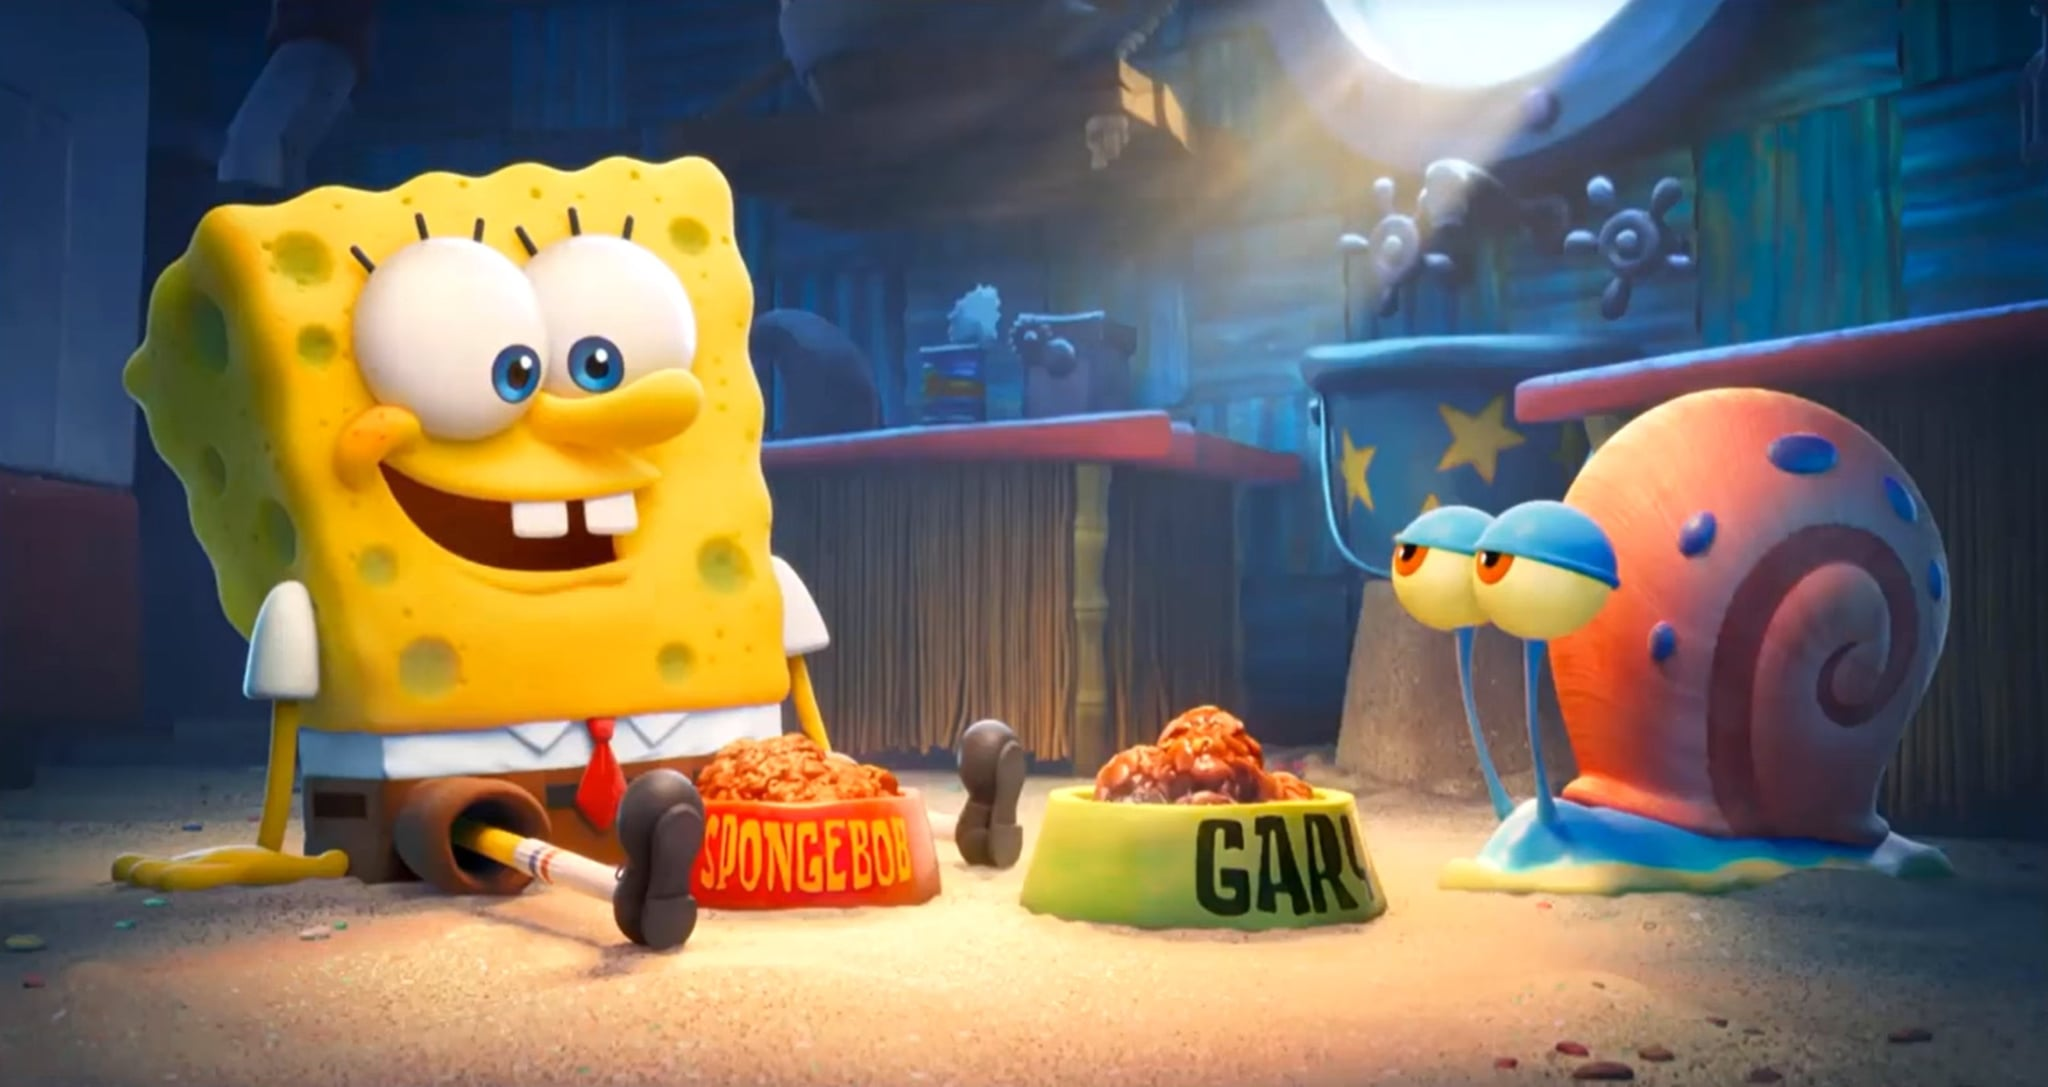 THE SPONGEBOB MOVIE: SPONGE ON THE RUN, from left: Spongebob Squarepants (voice: Tom Kenny), Gary the Snail, 2020.  Paramount Pictures / Courtesy Everett Collection